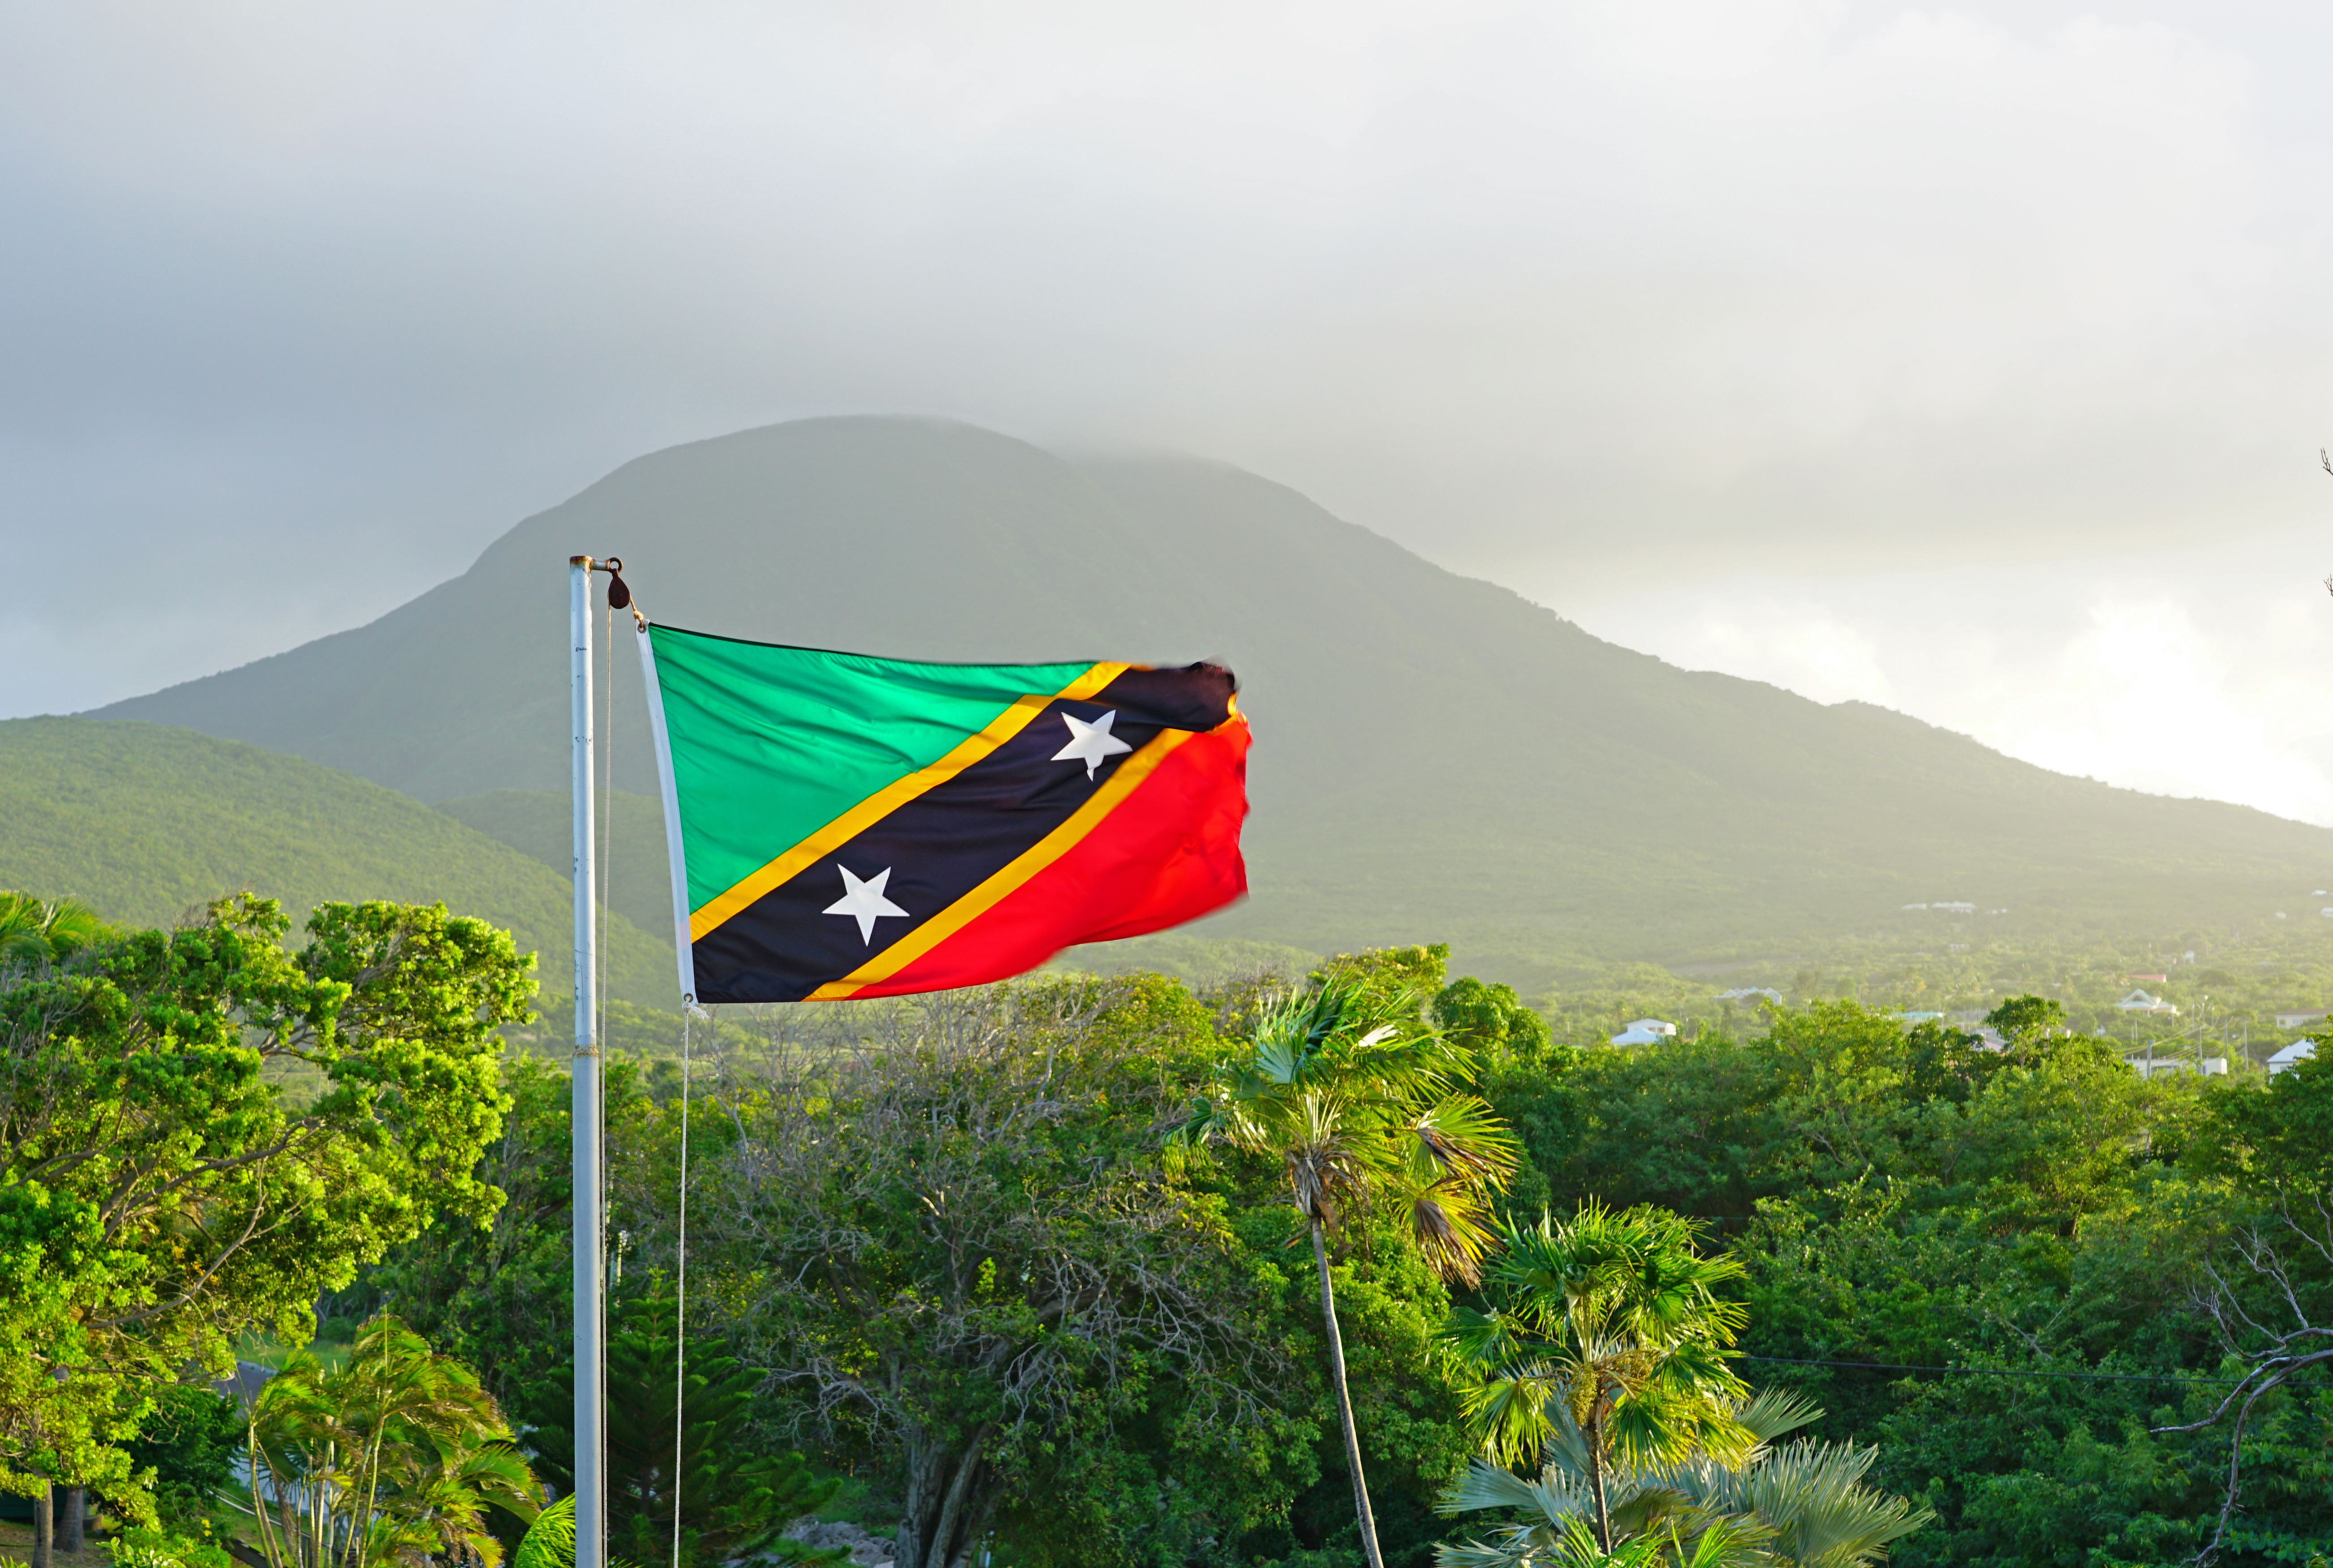 St. Kitts and Nevis will open borders to international visitors October 31, 2020